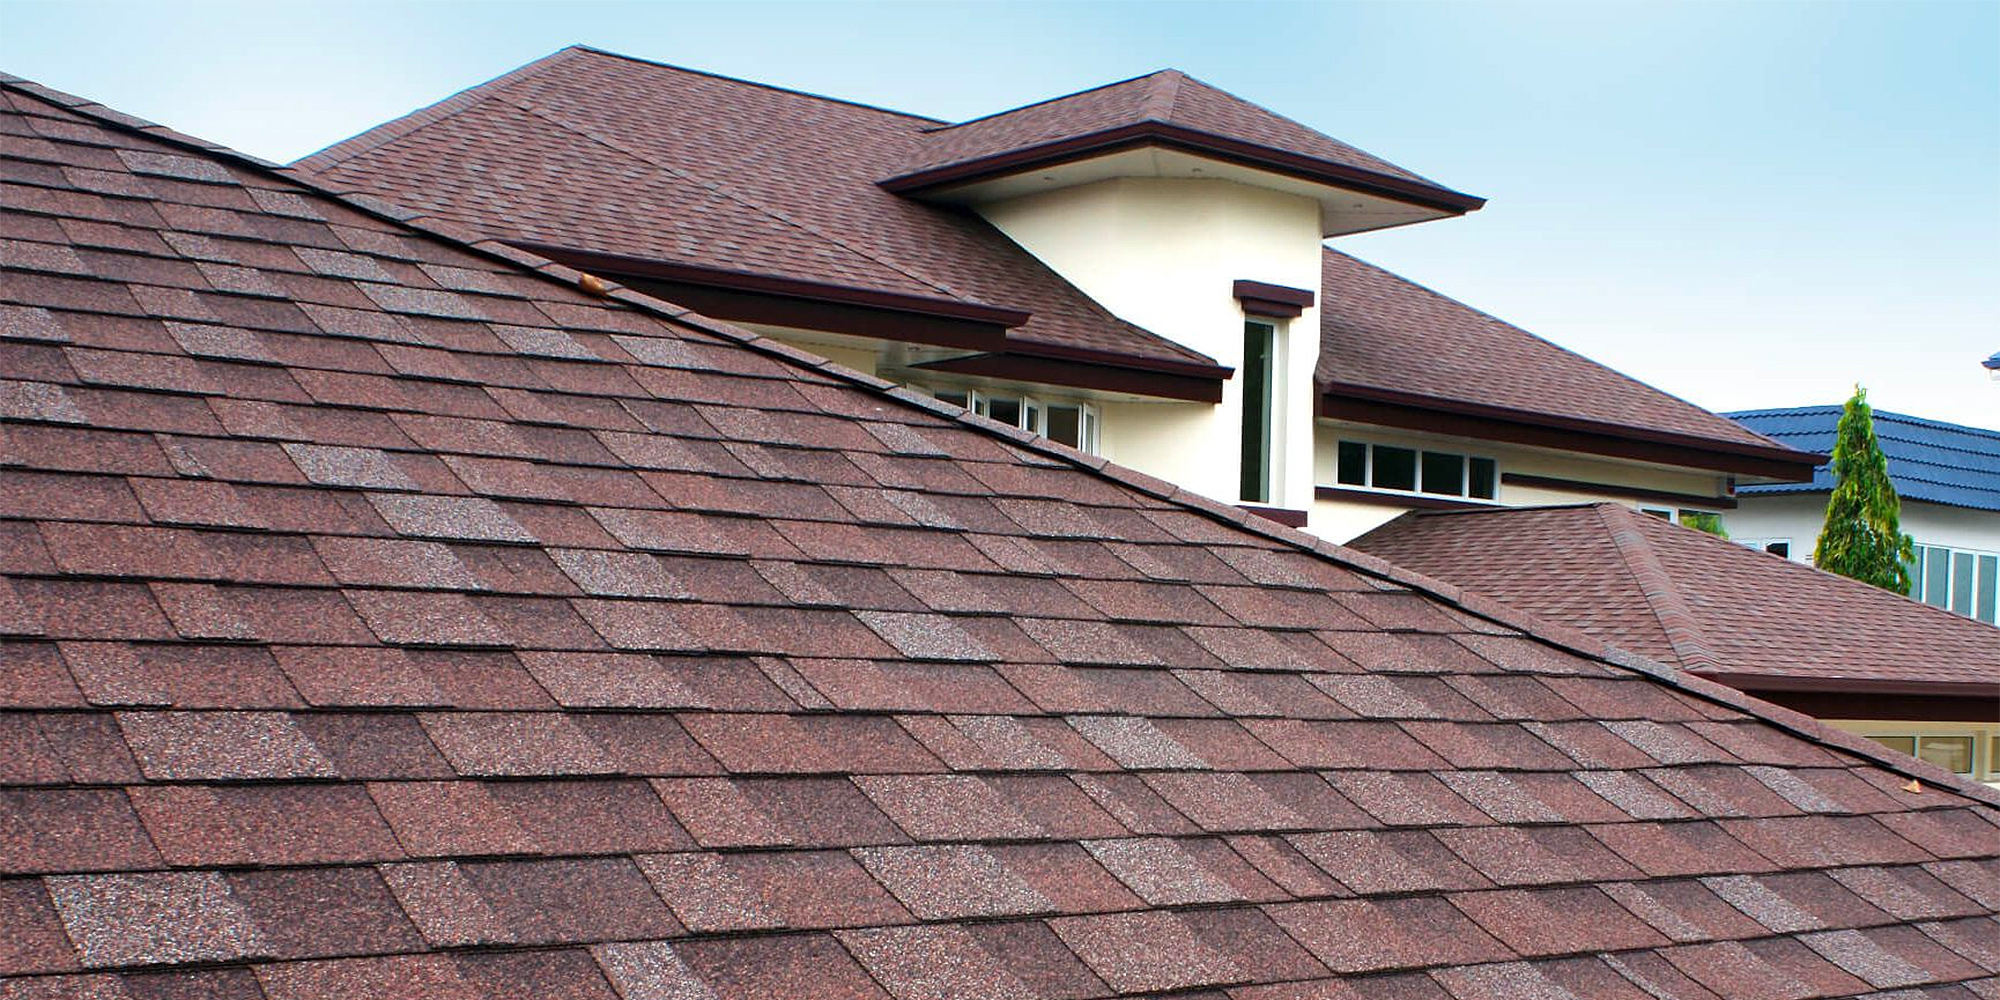 The Benefits of Roof Replacement from Garner Roofing, Your Baltimore Roofer